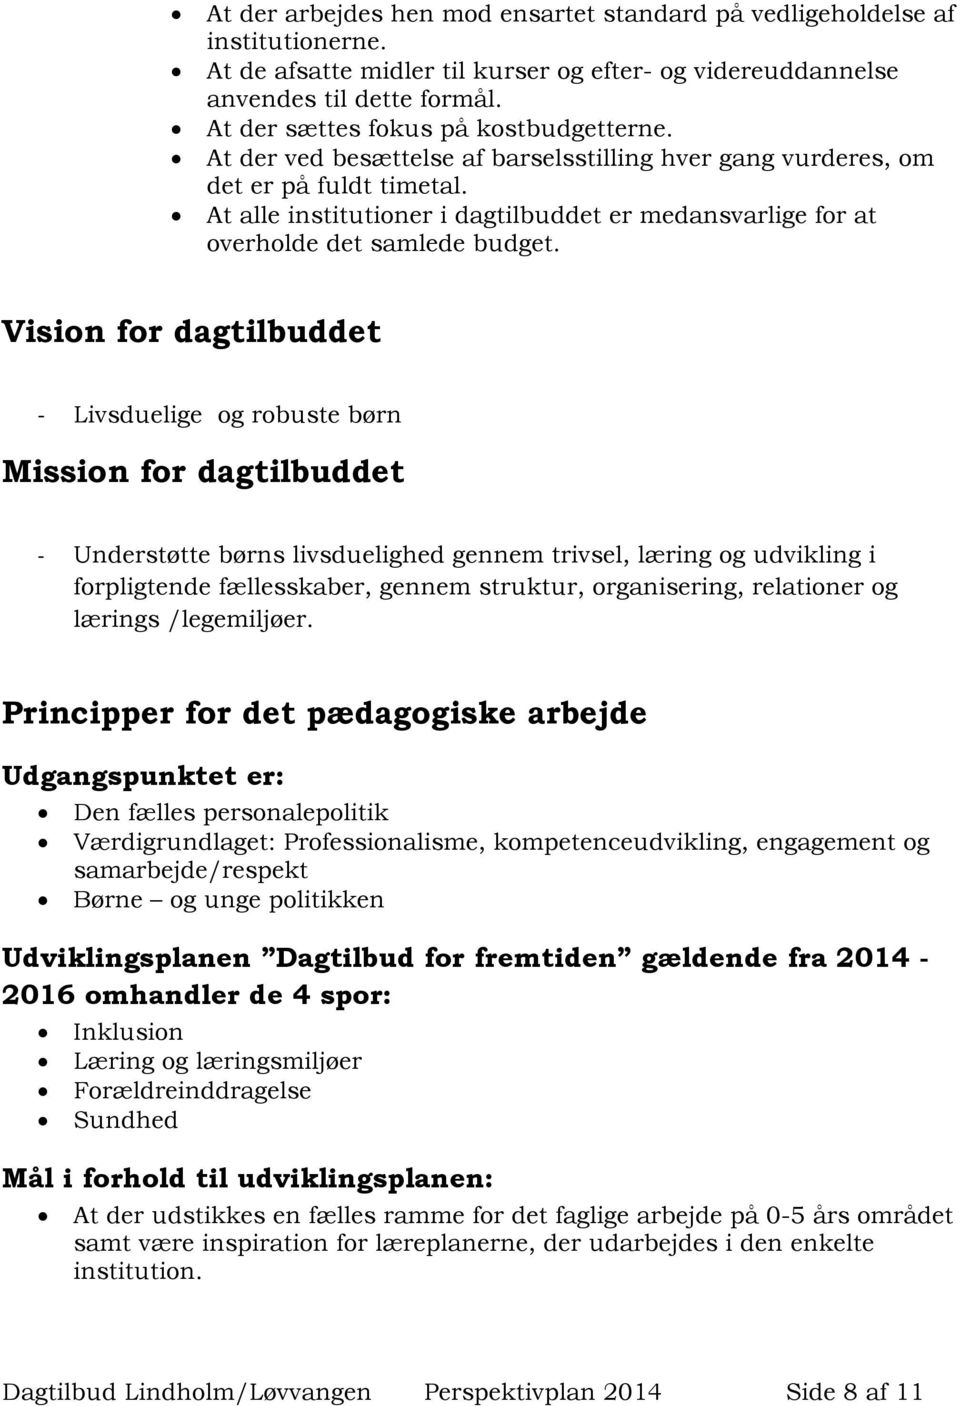 At alle institutioner i dagtilbuddet er medansvarlige for at overholde det samlede budget.